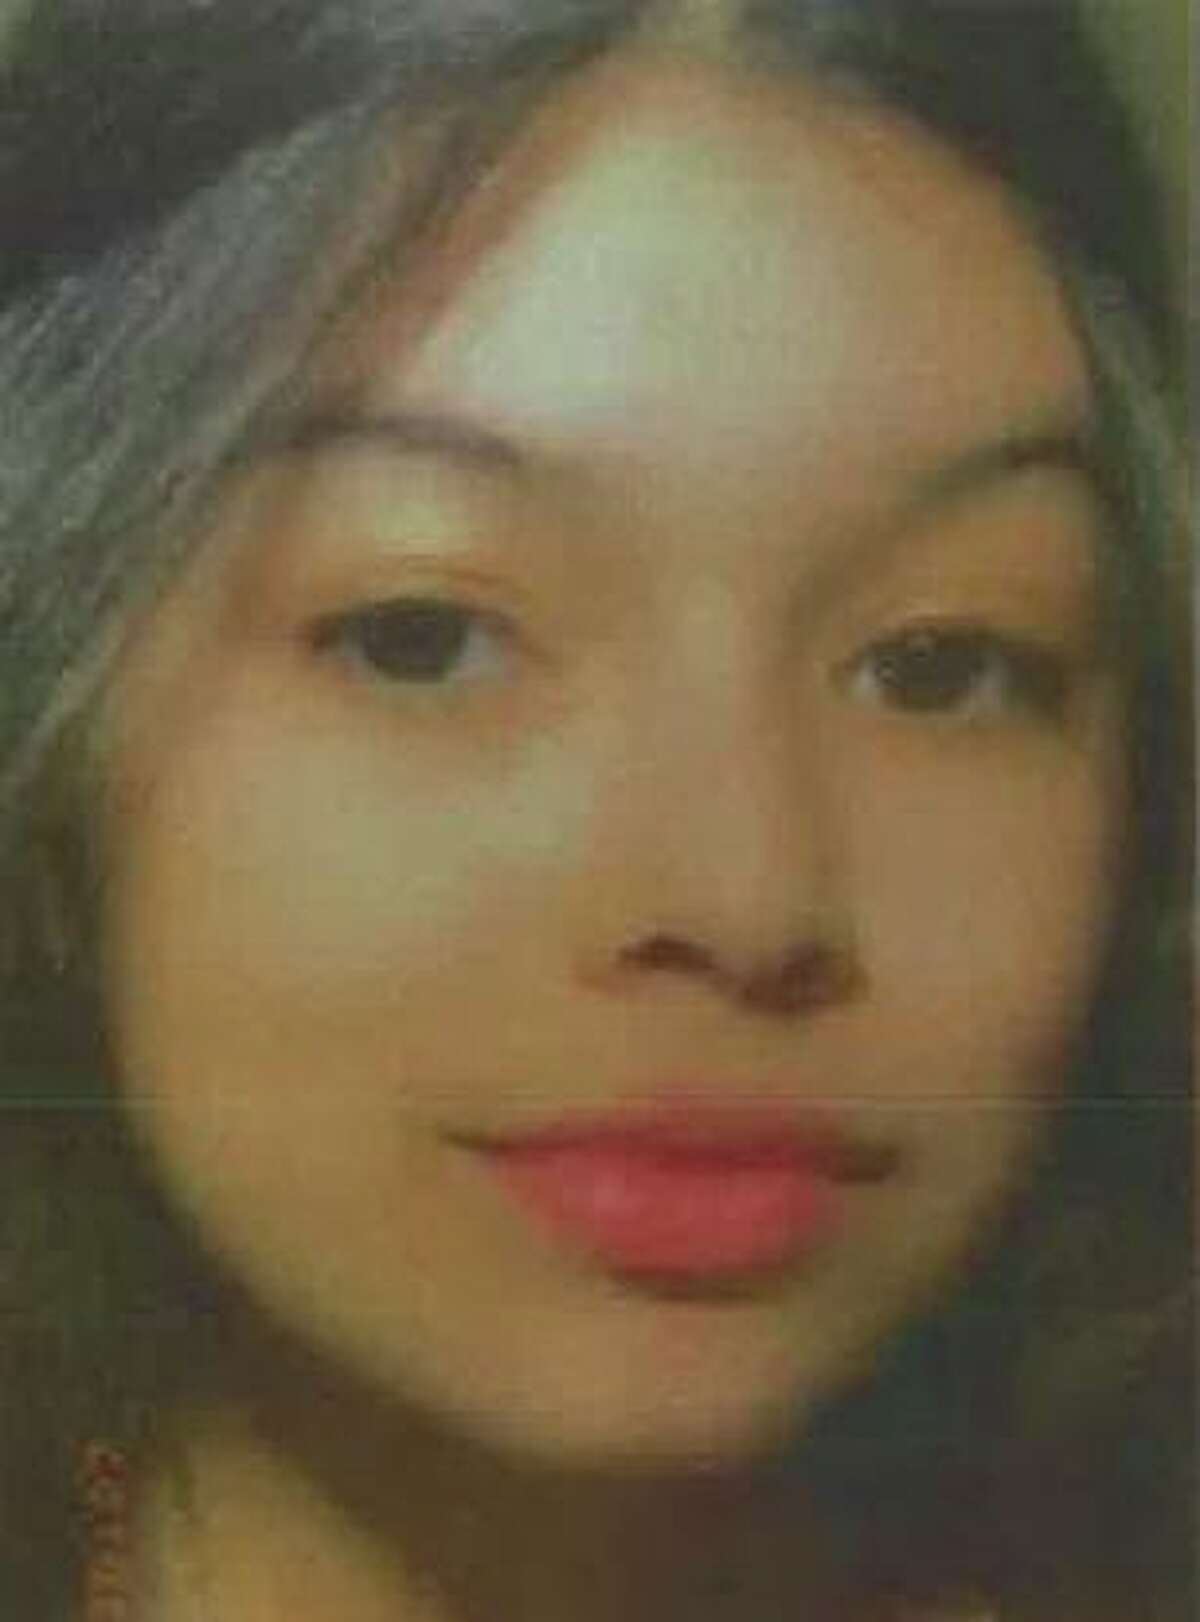 """A Silver Alert was issued on Saturday, June 19, 2021, for Giselle Juarez-Chinchilla, a Shelton Street resident in Bridgeport, Conn. The alert described her as an """"endangered runaway."""""""